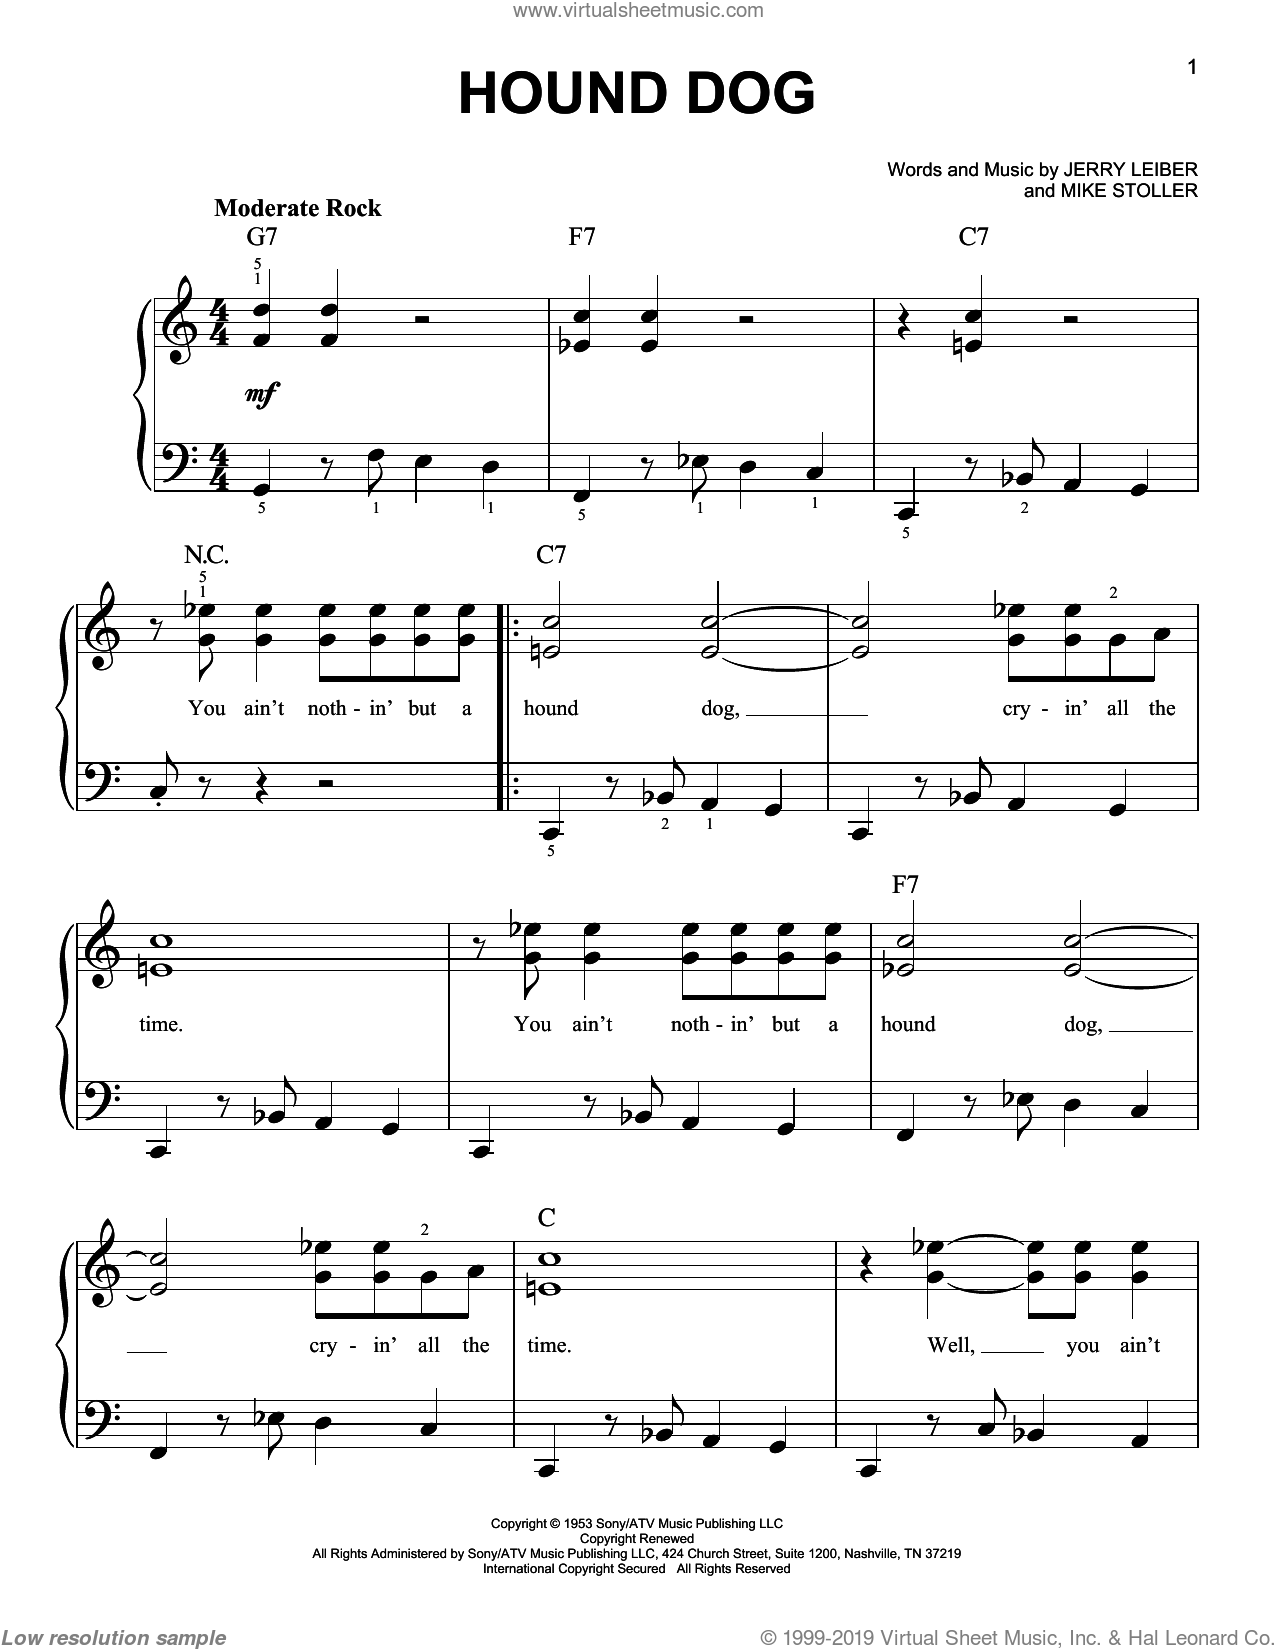 Hound Dog, (easy) sheet music for piano solo by Elvis Presley, Leiber & Stoller, Jerry Leiber and Mike Stoller, easy skill level